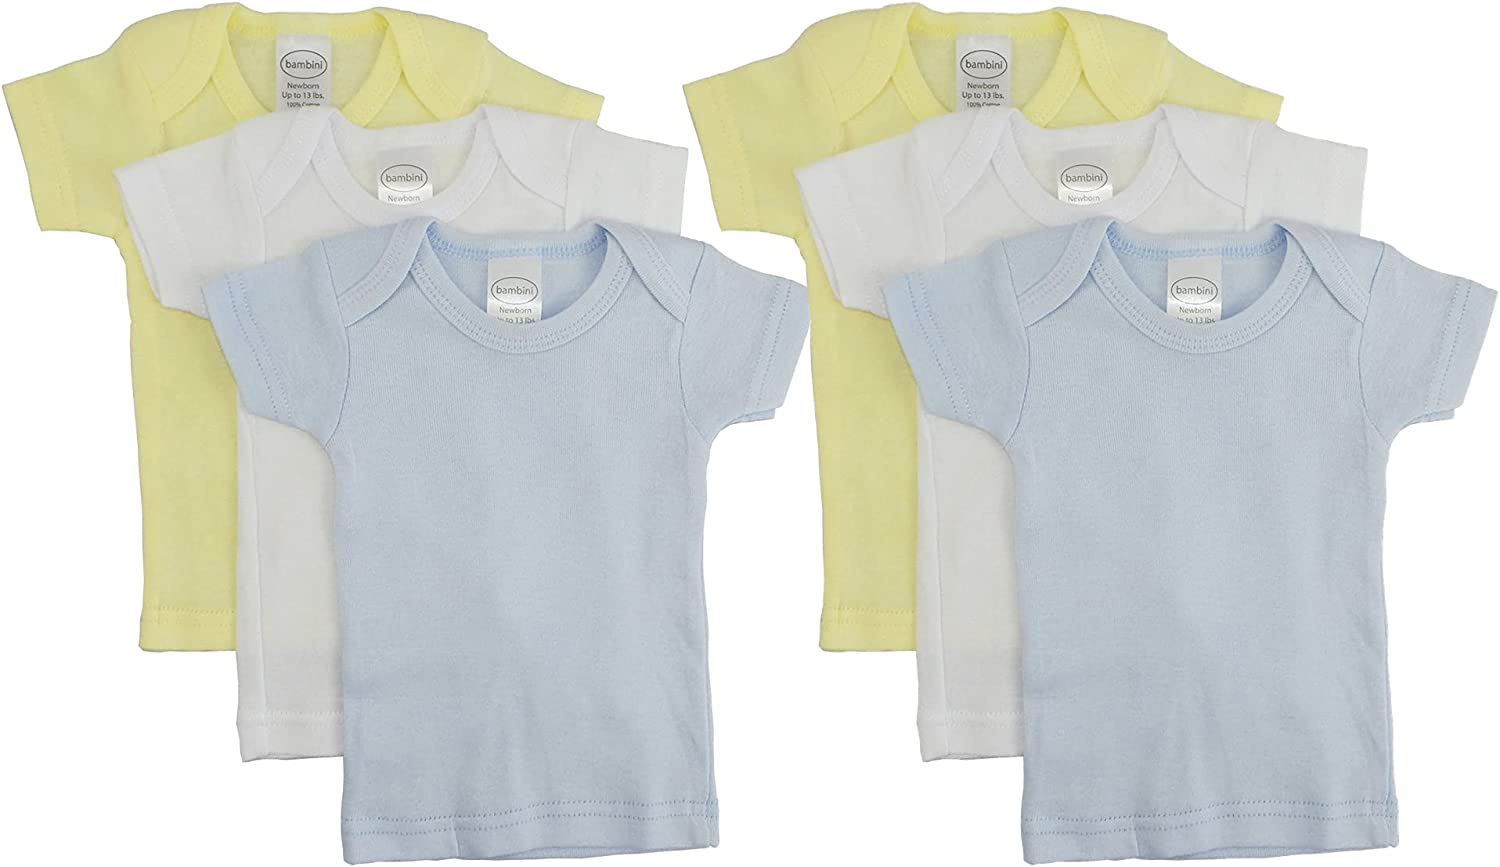 Unisex Baby Short & Long Sleeve Tee Shirts, 100% Cotton for Variety Packs of 3-Pack/ 6-Pack (Newborn (0-6 Months/up to 13 lbs.), Short-Sleeve_6-Pack_Pastel_for Boy)